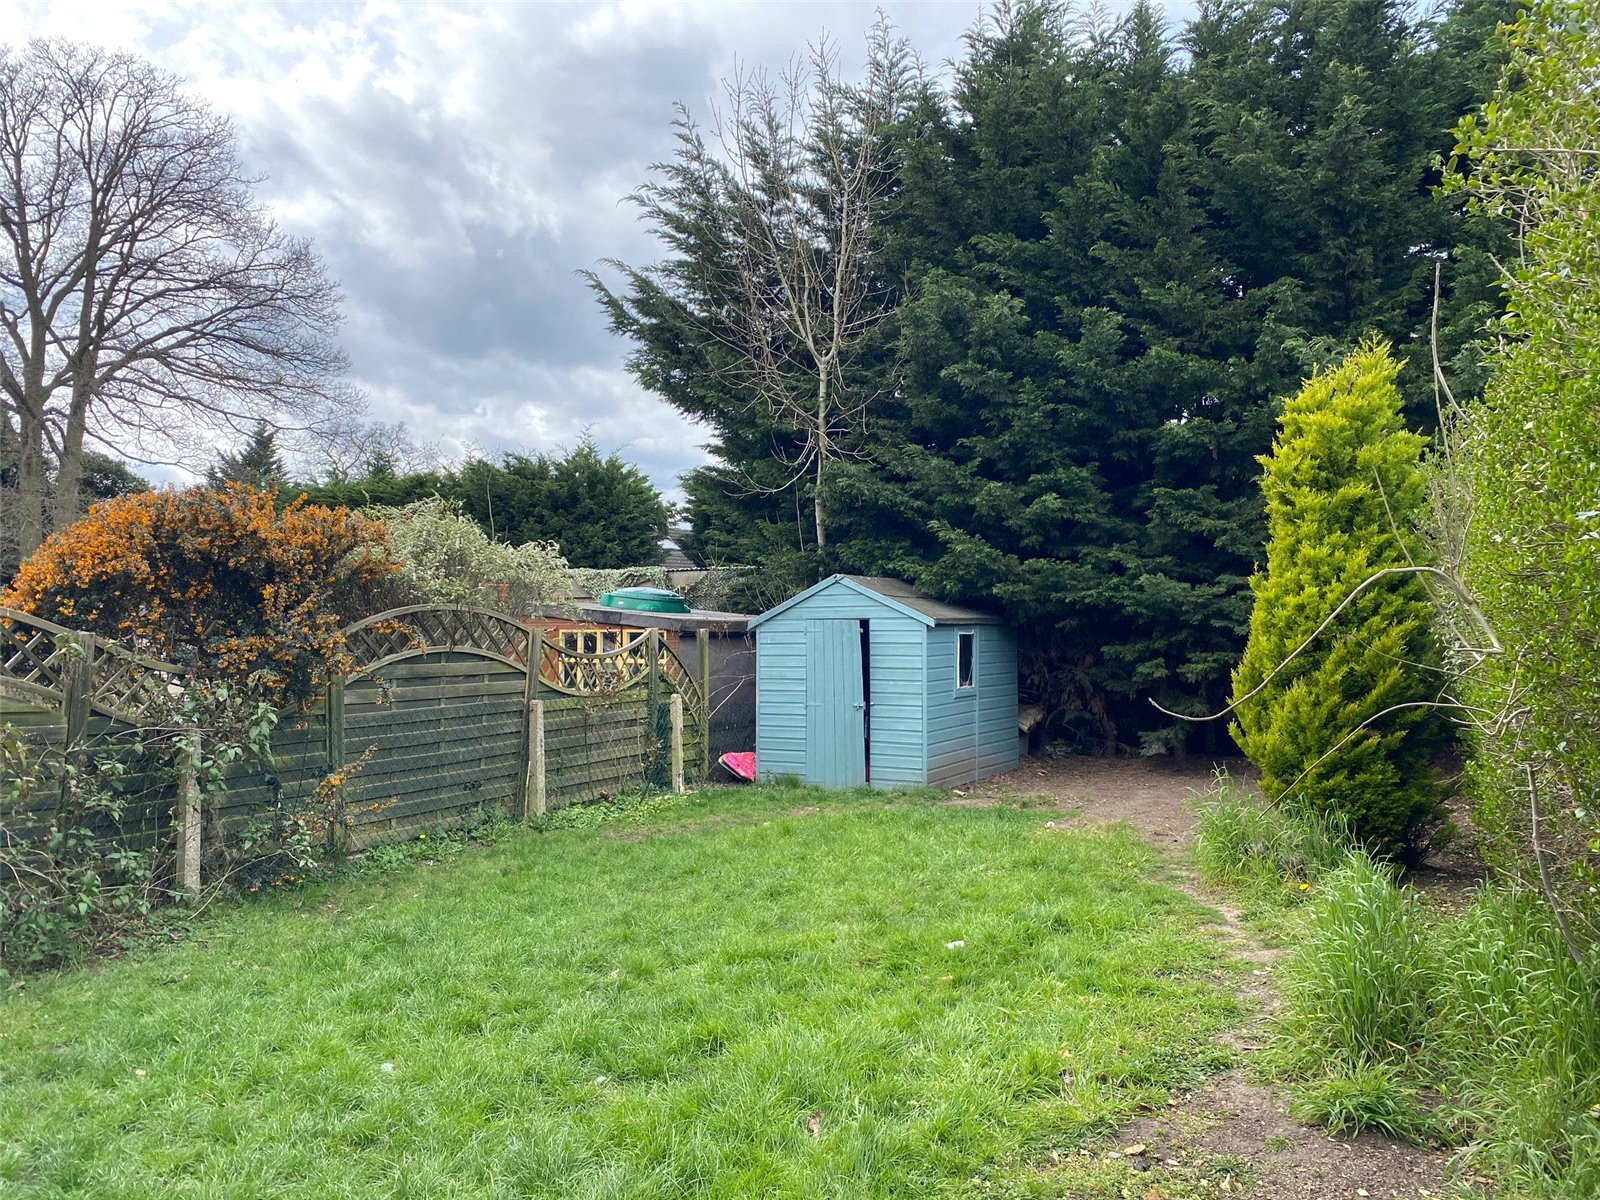 3 bed house to rent in Bricket Wood, AL2 3NB 1